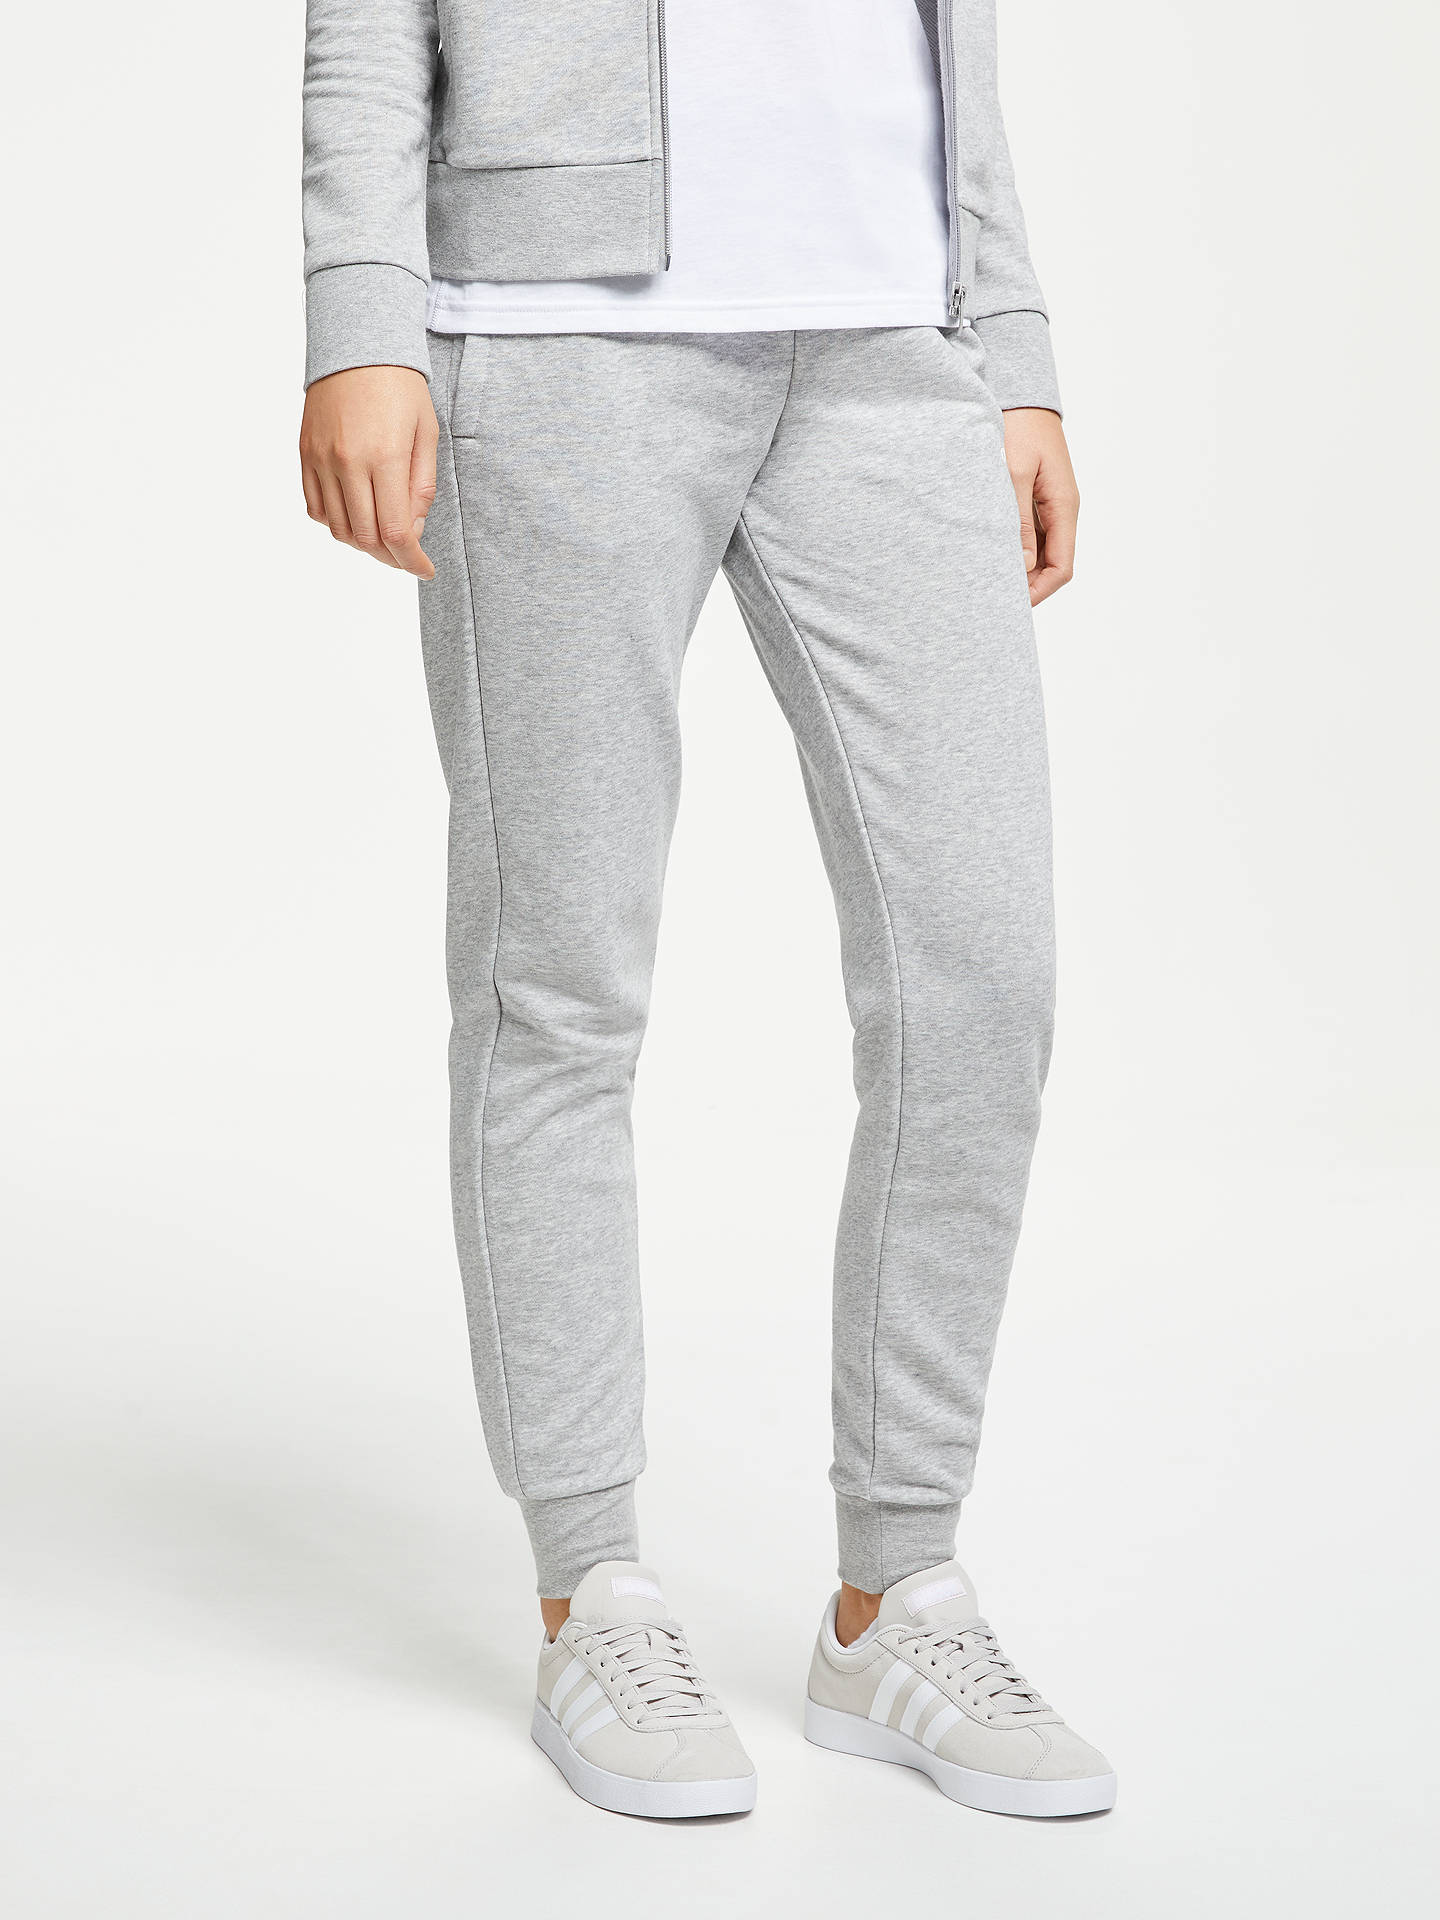 e5958ce9adc4 Buy adidas Essentials Solid Tracksuit Bottoms